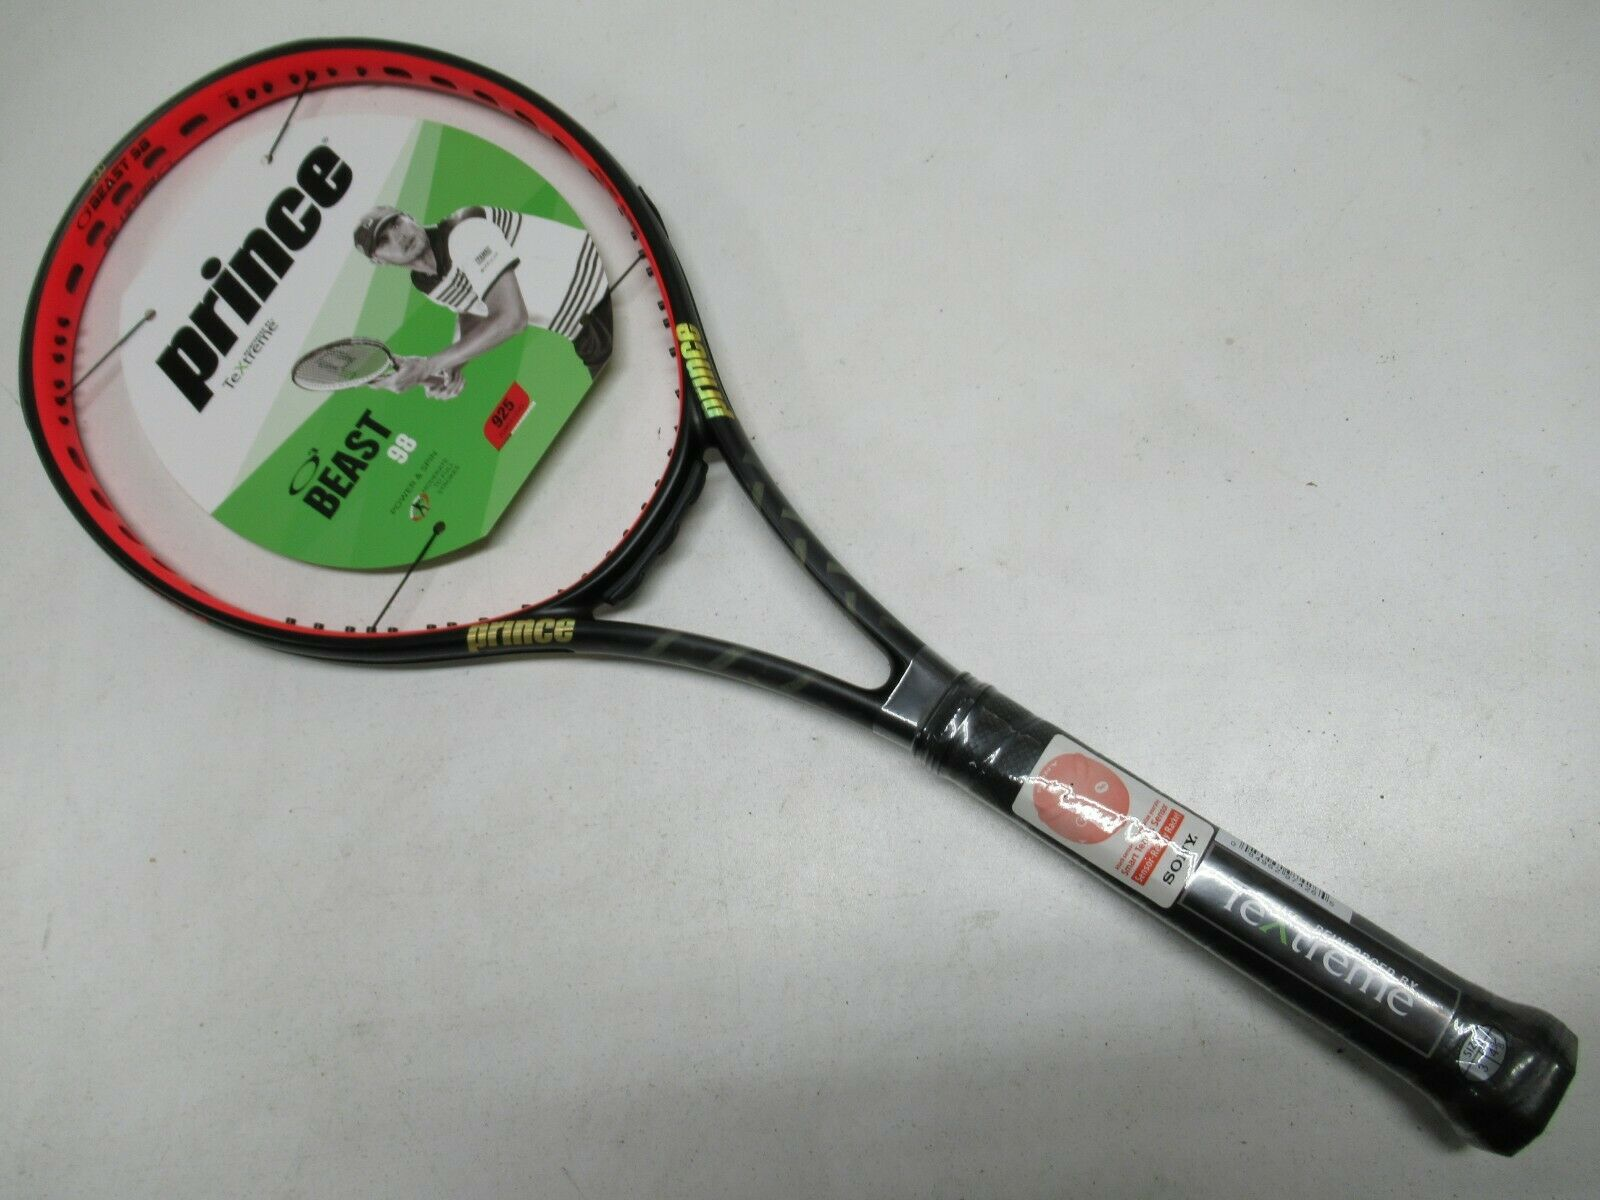 NEW PRINCE TEXTREME BEAST 98 TENNIS RACQUET (4 3 8)